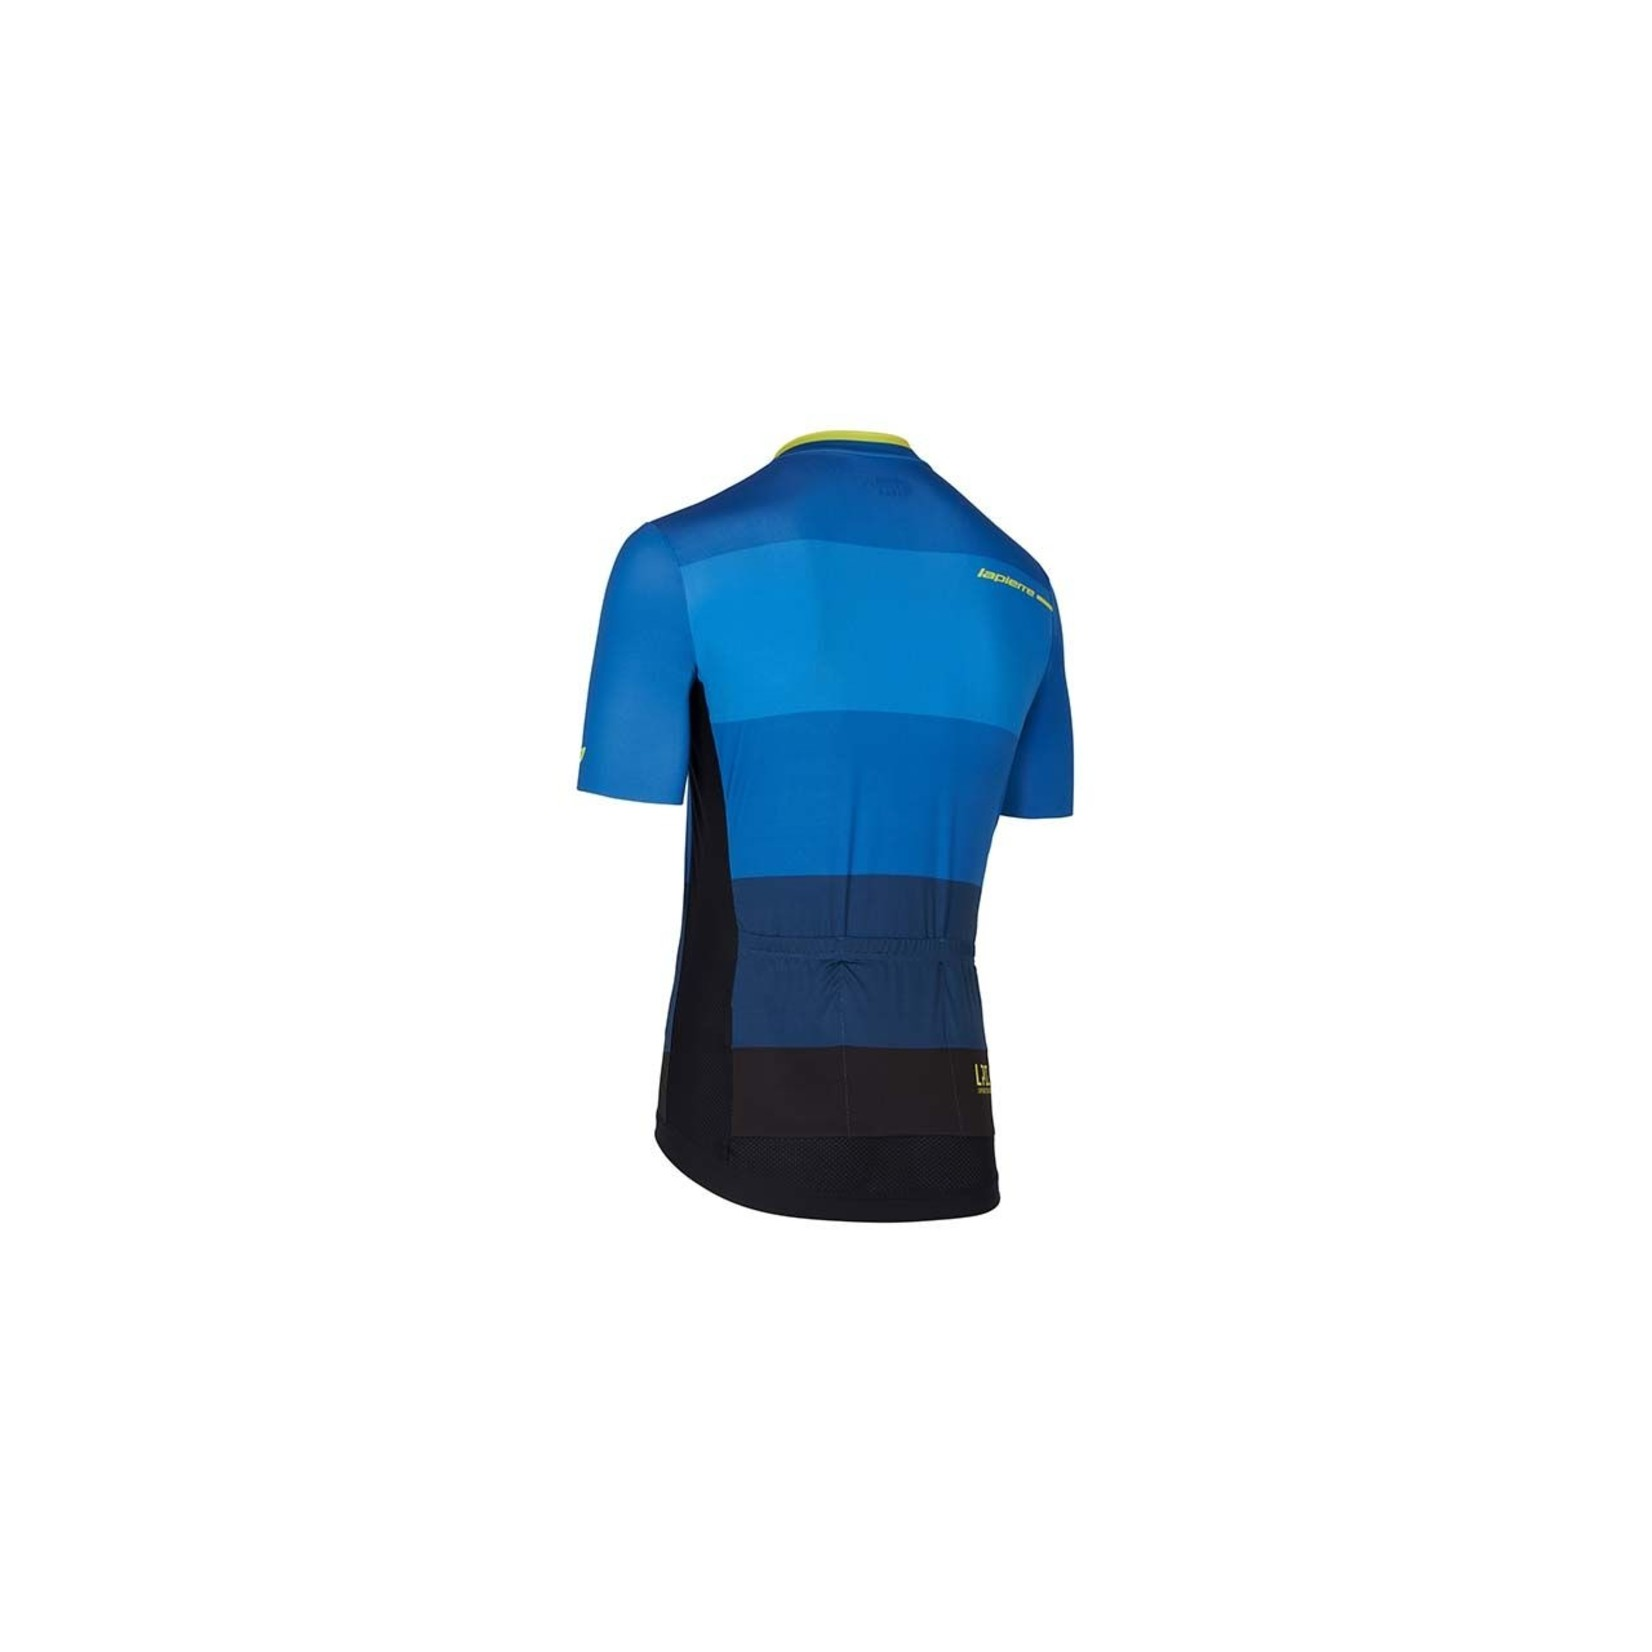 Lapierre Superlight Petrol Lime Cycling Jersey Large 2019